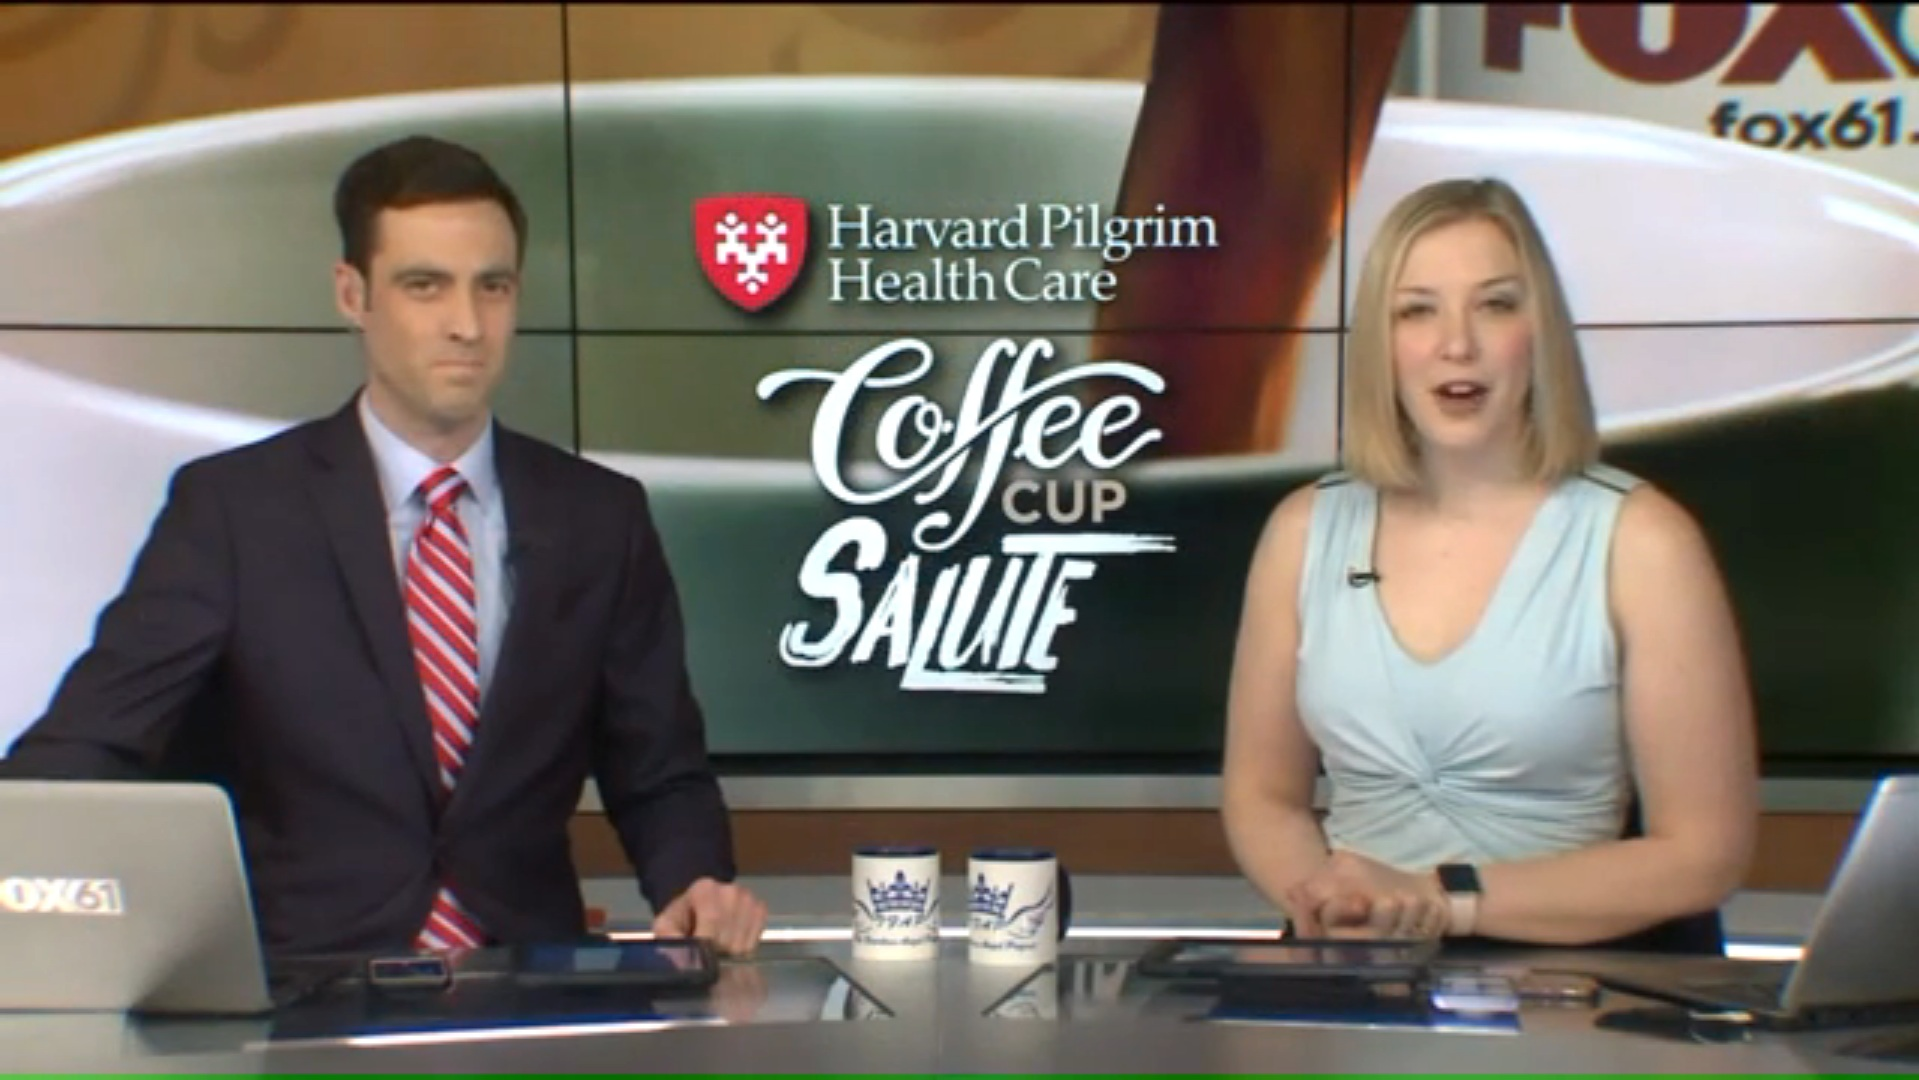 FOX 61 TFAP COFFE CUP SALUTE   JANUARY 11, 2019    SEE ARTICLE